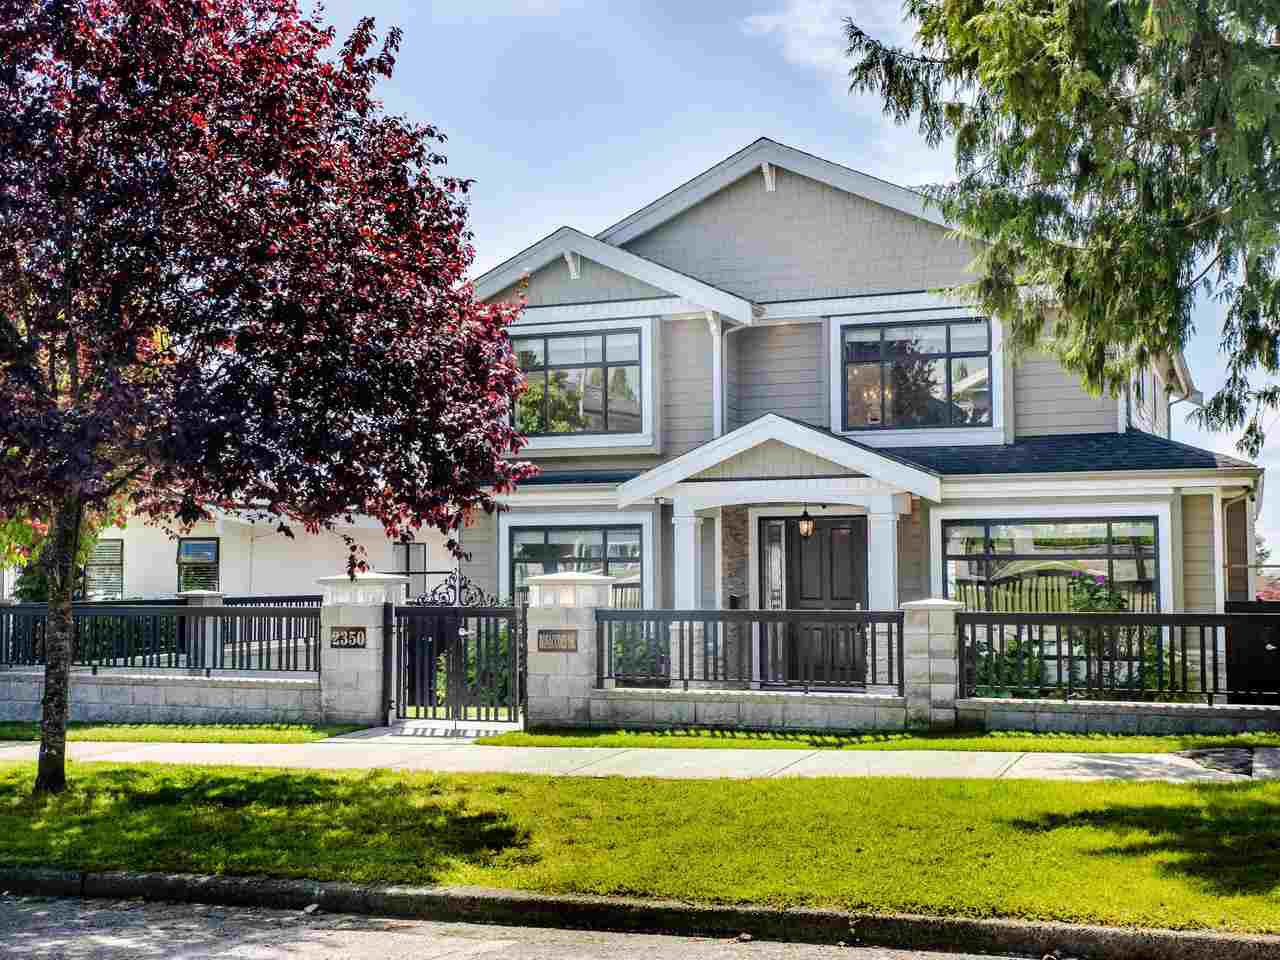 Main Photo: 2350 BONACCORD Drive in Vancouver: Fraserview VE House for sale (Vancouver East)  : MLS®# R2468026